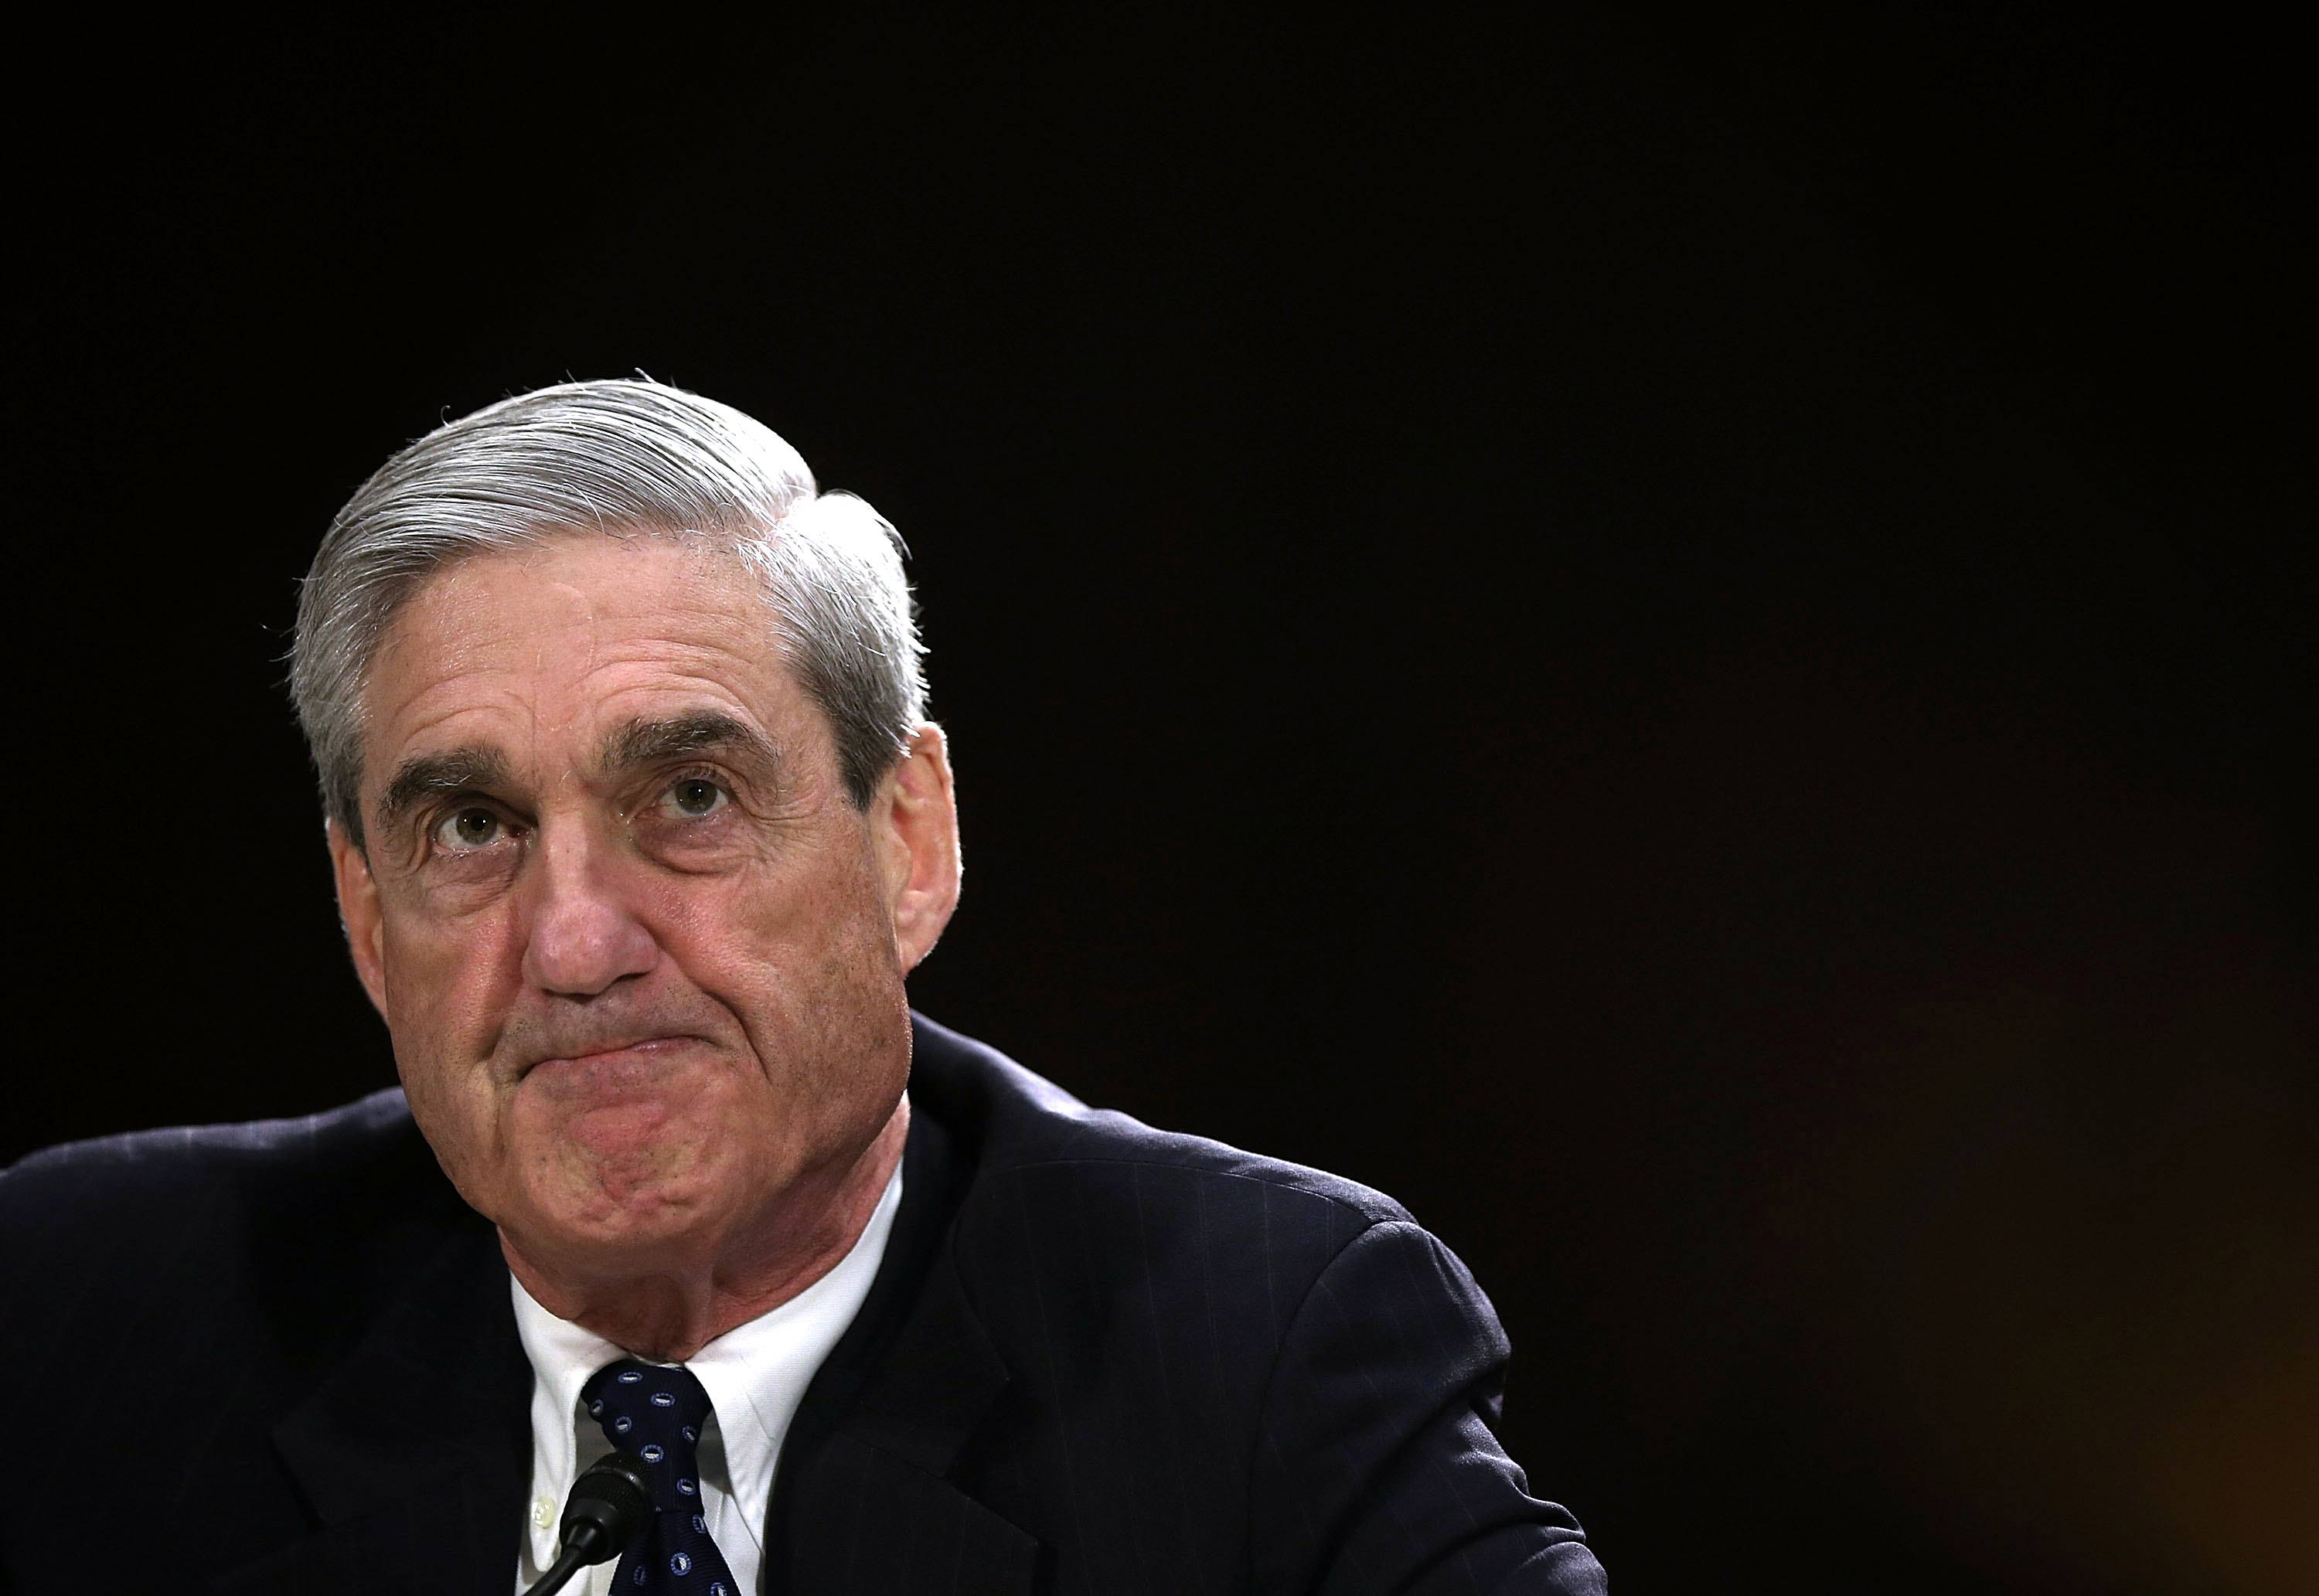 robert mueller in a dark suit and a dark tie against a black background